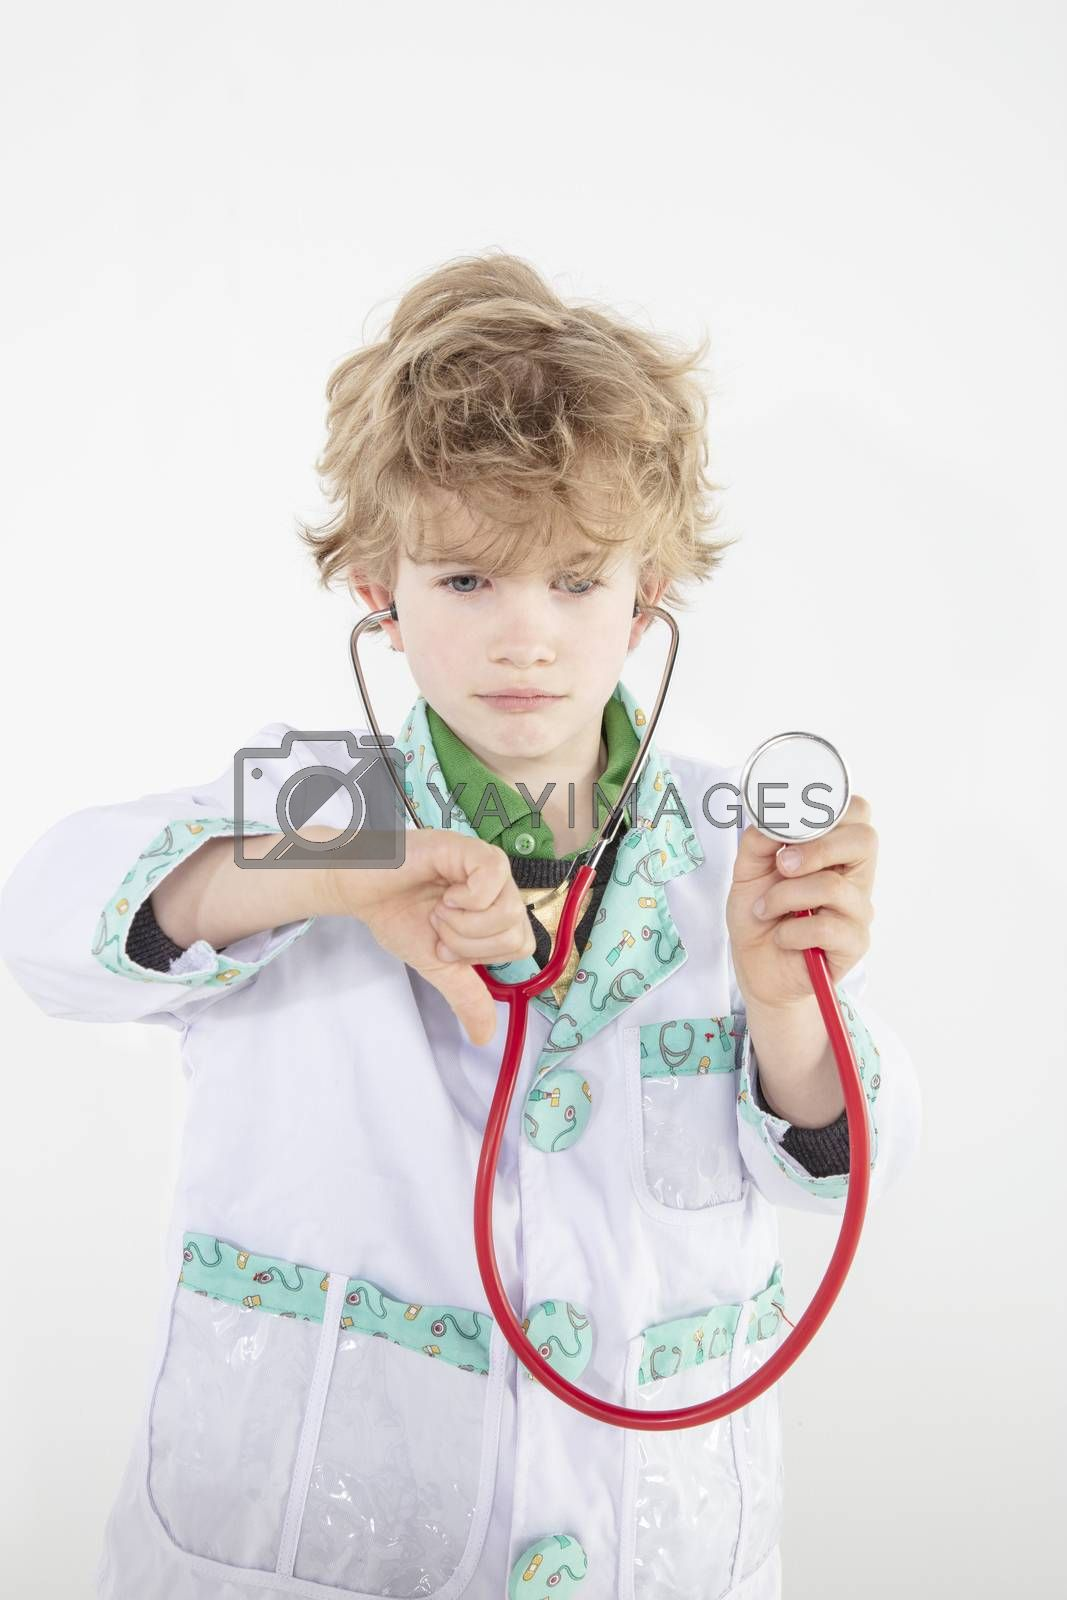 young doctor shows thumbs down, negative emotions